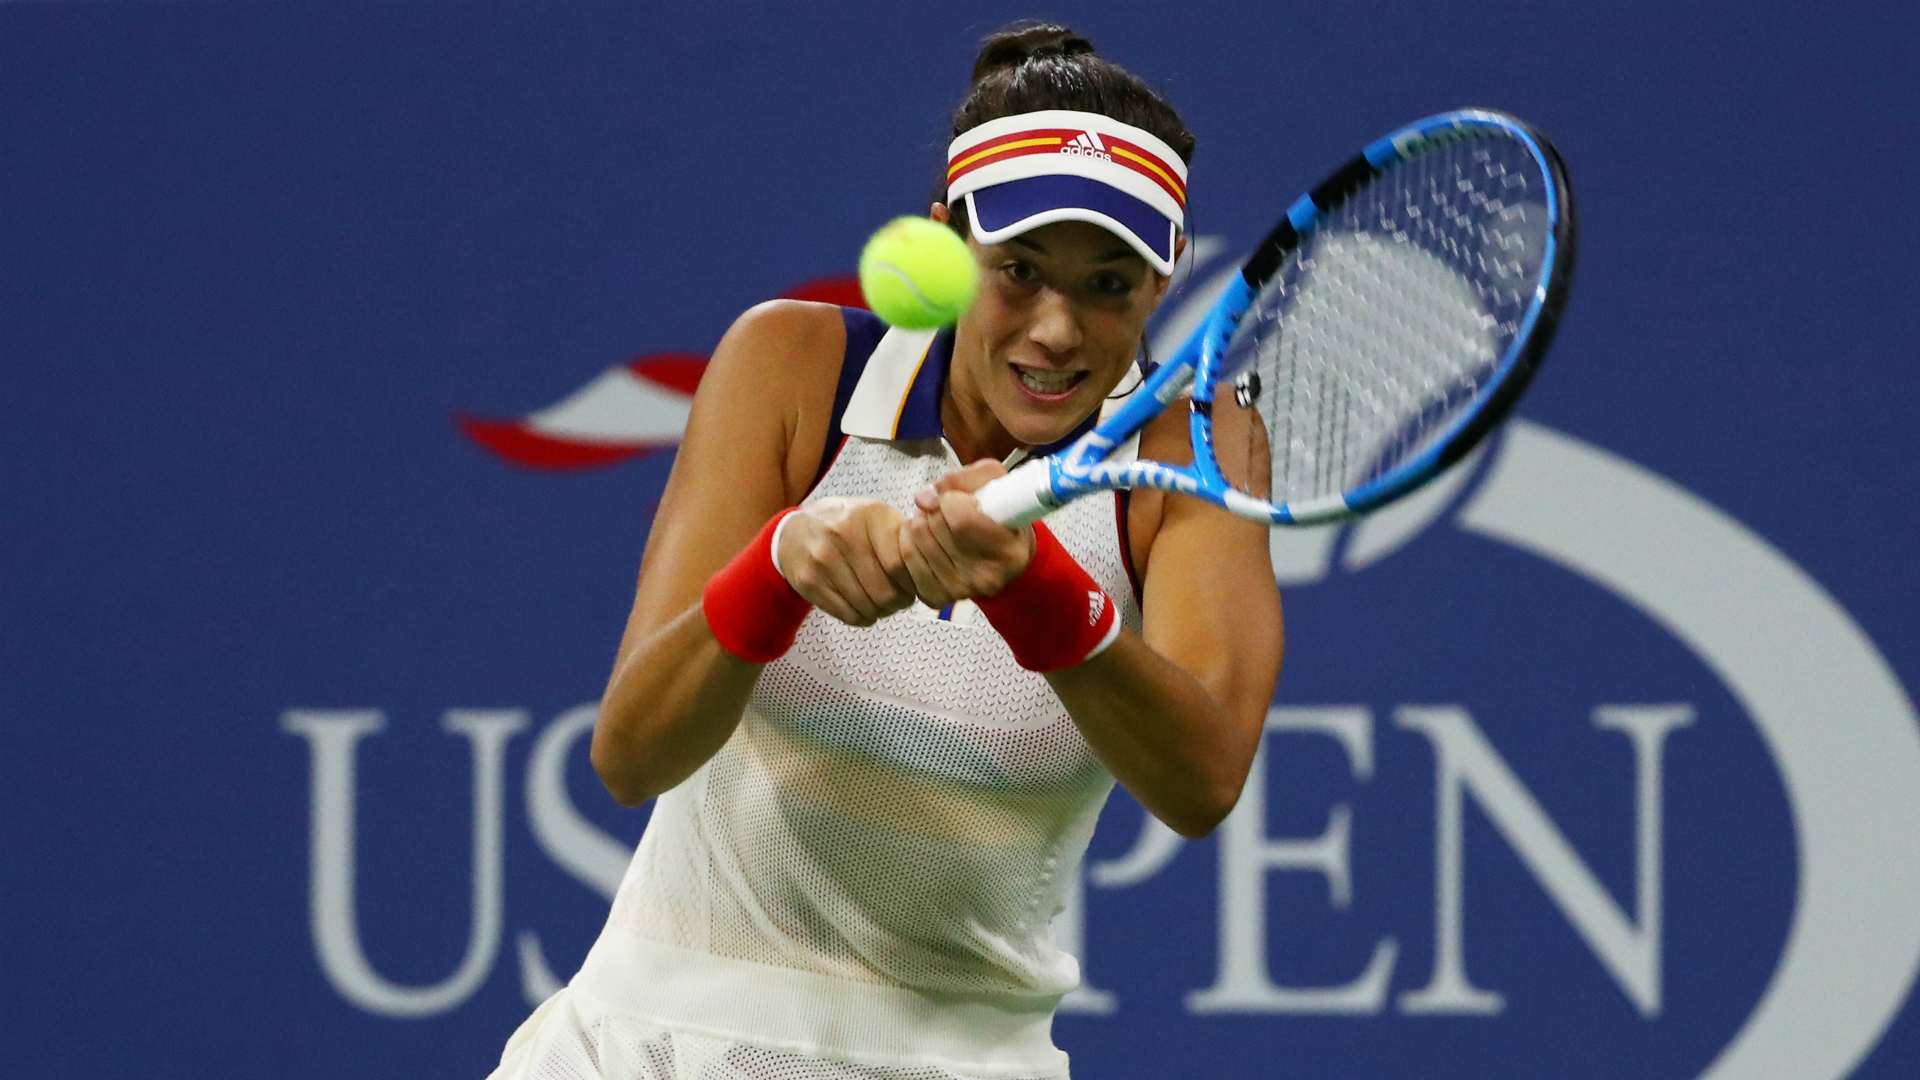 U.S Open 2017: Garbine Muguruza, Maria Sharapova advance on big day for Williams family